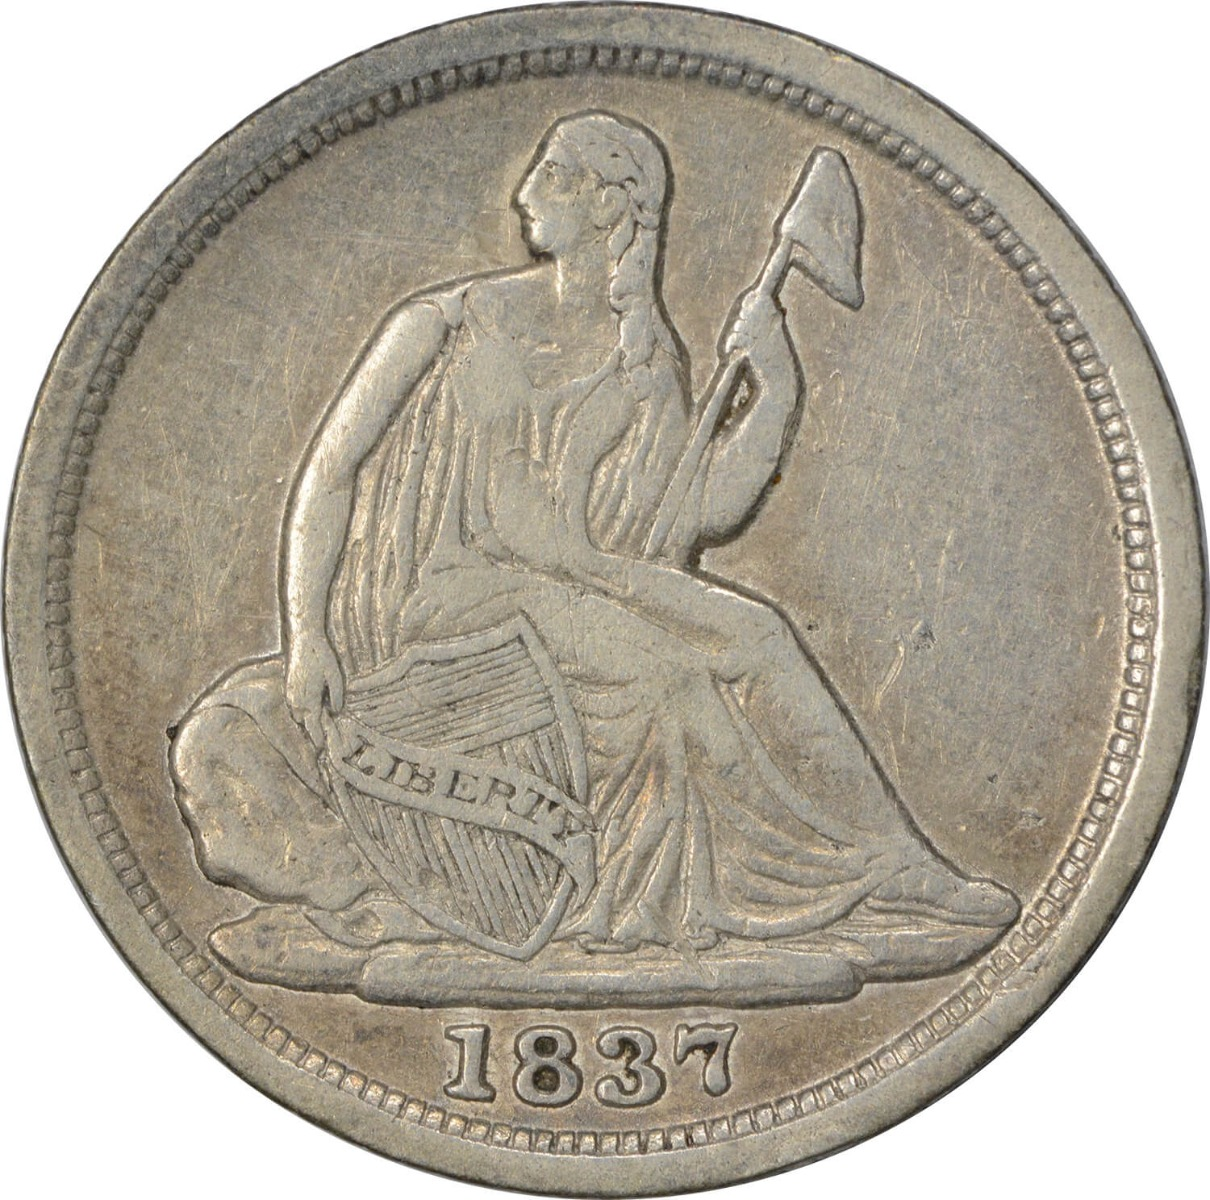 1837 Liberty Seated Silver Half Dime, No Stars, Small Date, EF, Uncertified